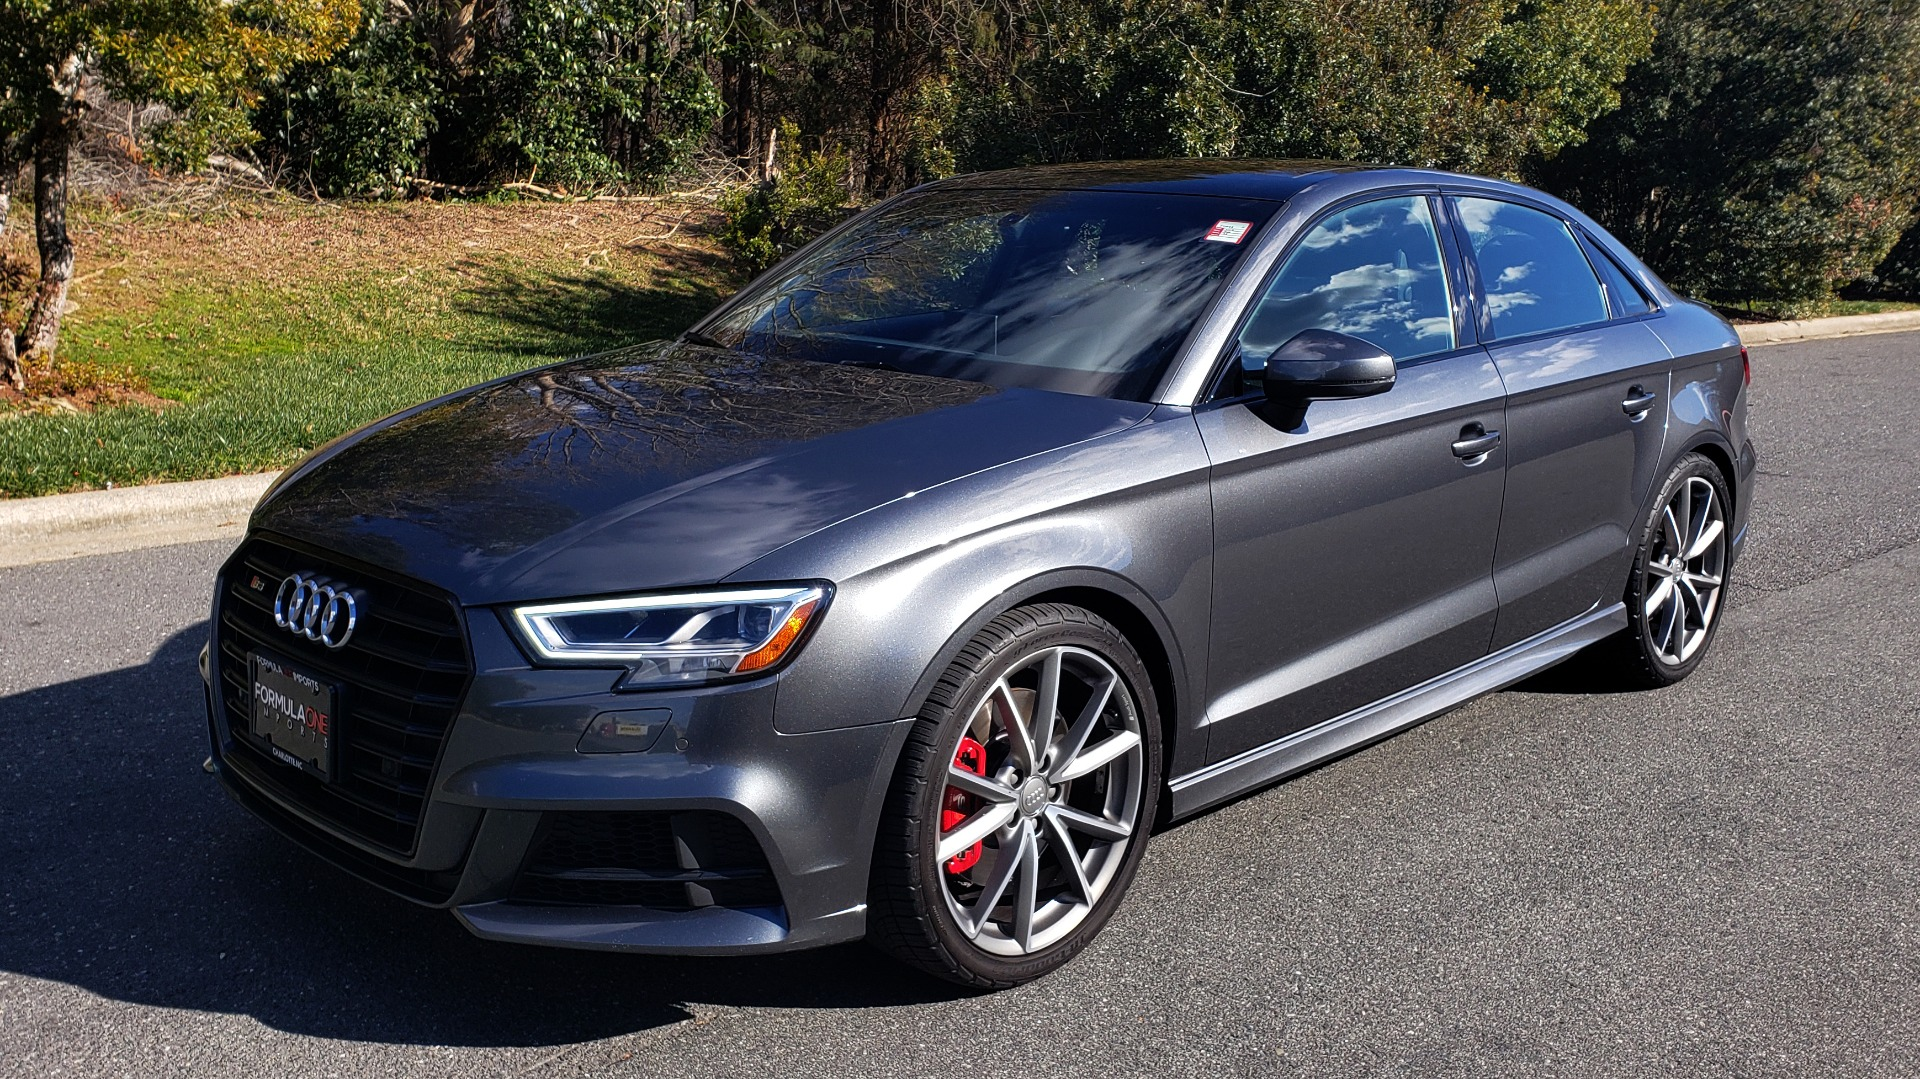 Used 2018 Audi S3 PREMIUM PLUS / TECH / NAV / BLACK OPTIC / S-SPORT / REARVIEW for sale $32,995 at Formula Imports in Charlotte NC 28227 1